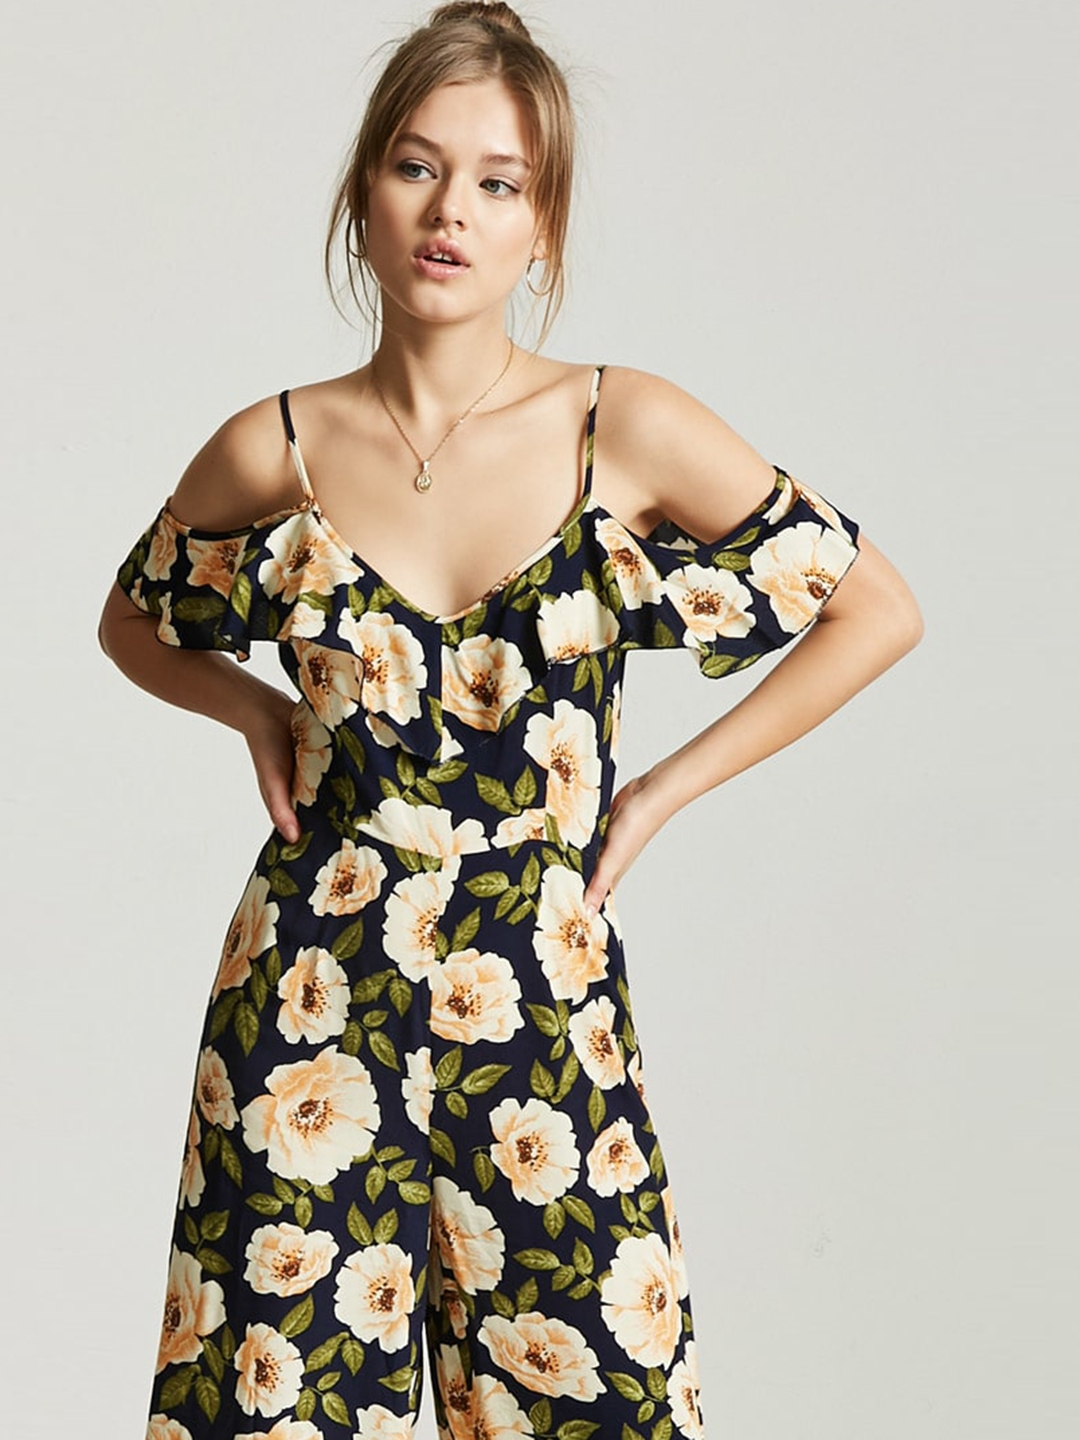 aef0aa6c72 Buy FOREVER 21 Navy Blue   Off White Floral Print Basic Jumpsuit ...